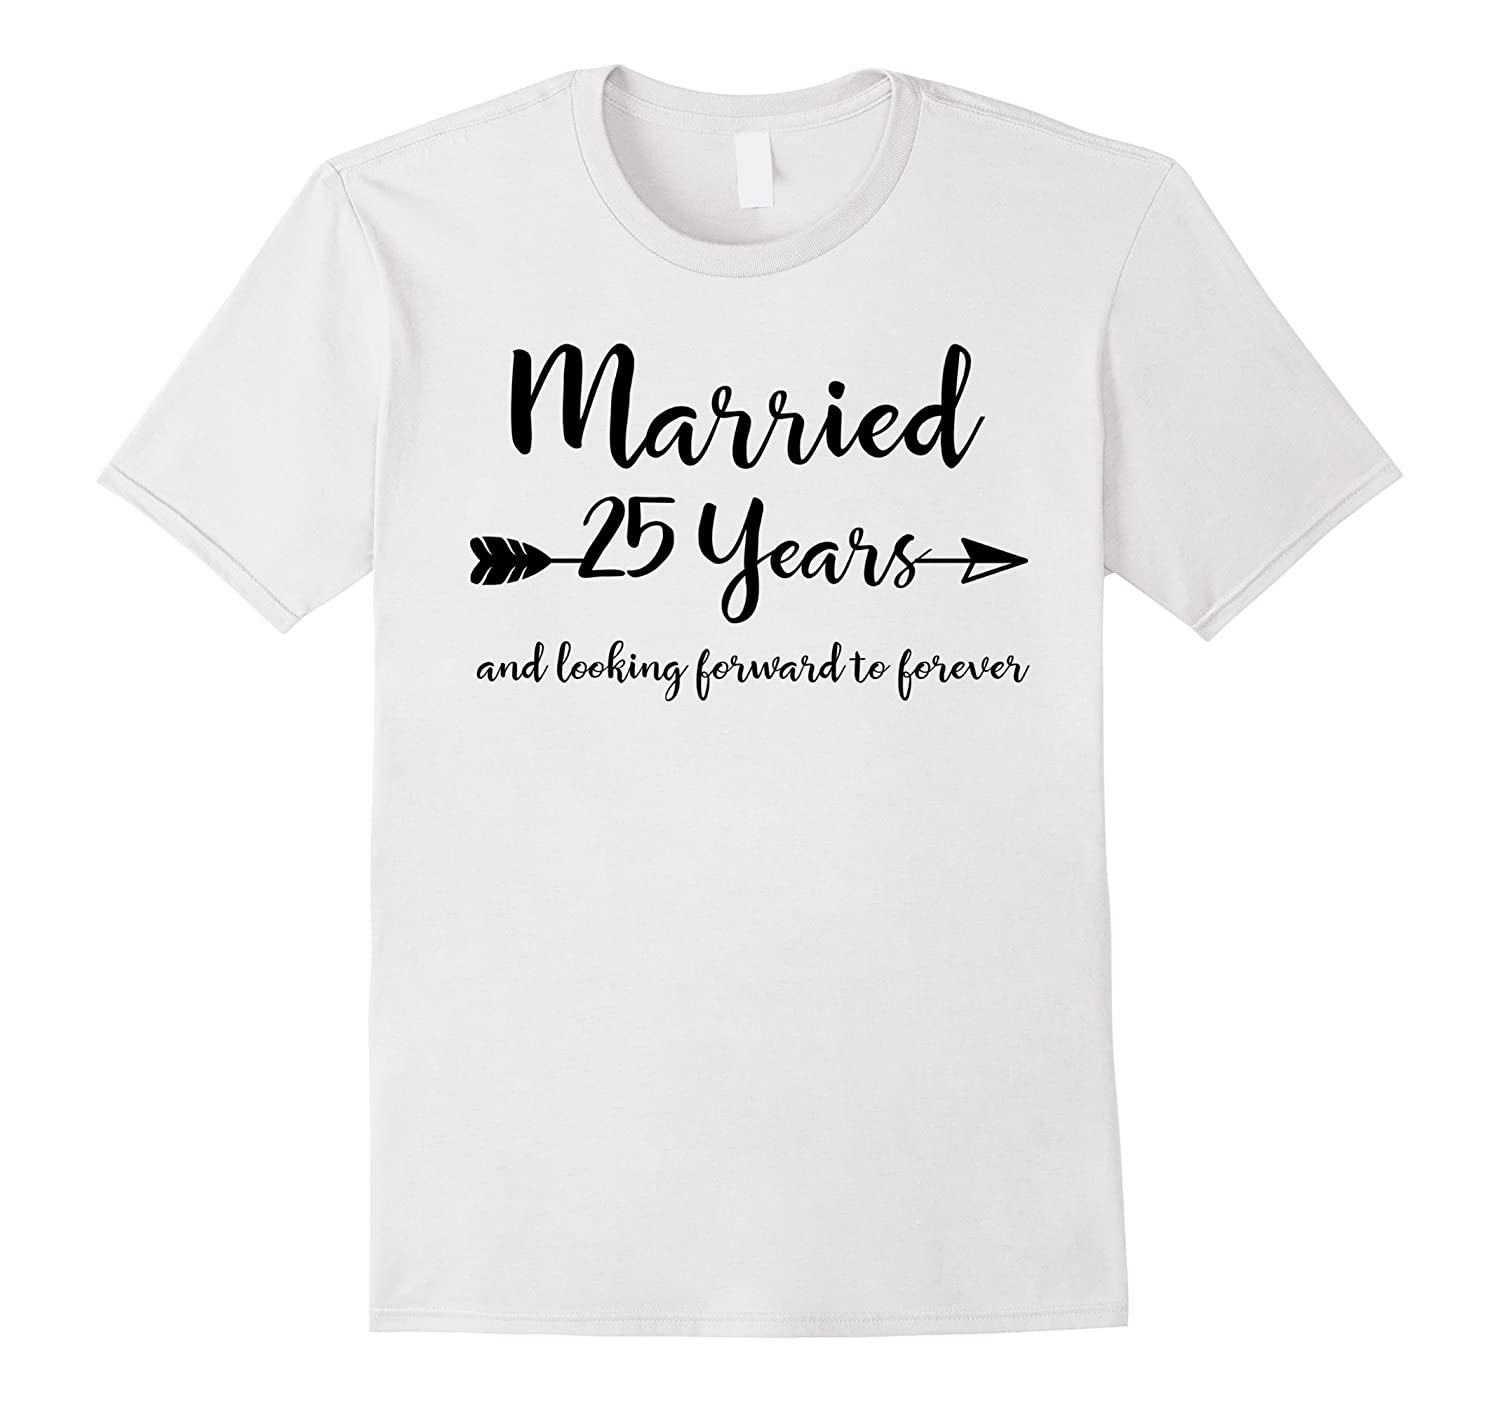 25th Wedding Anniversary Gift Ideas For Him: 25th Wedding Anniversary Gifts For Him Her Couples T-Shirt